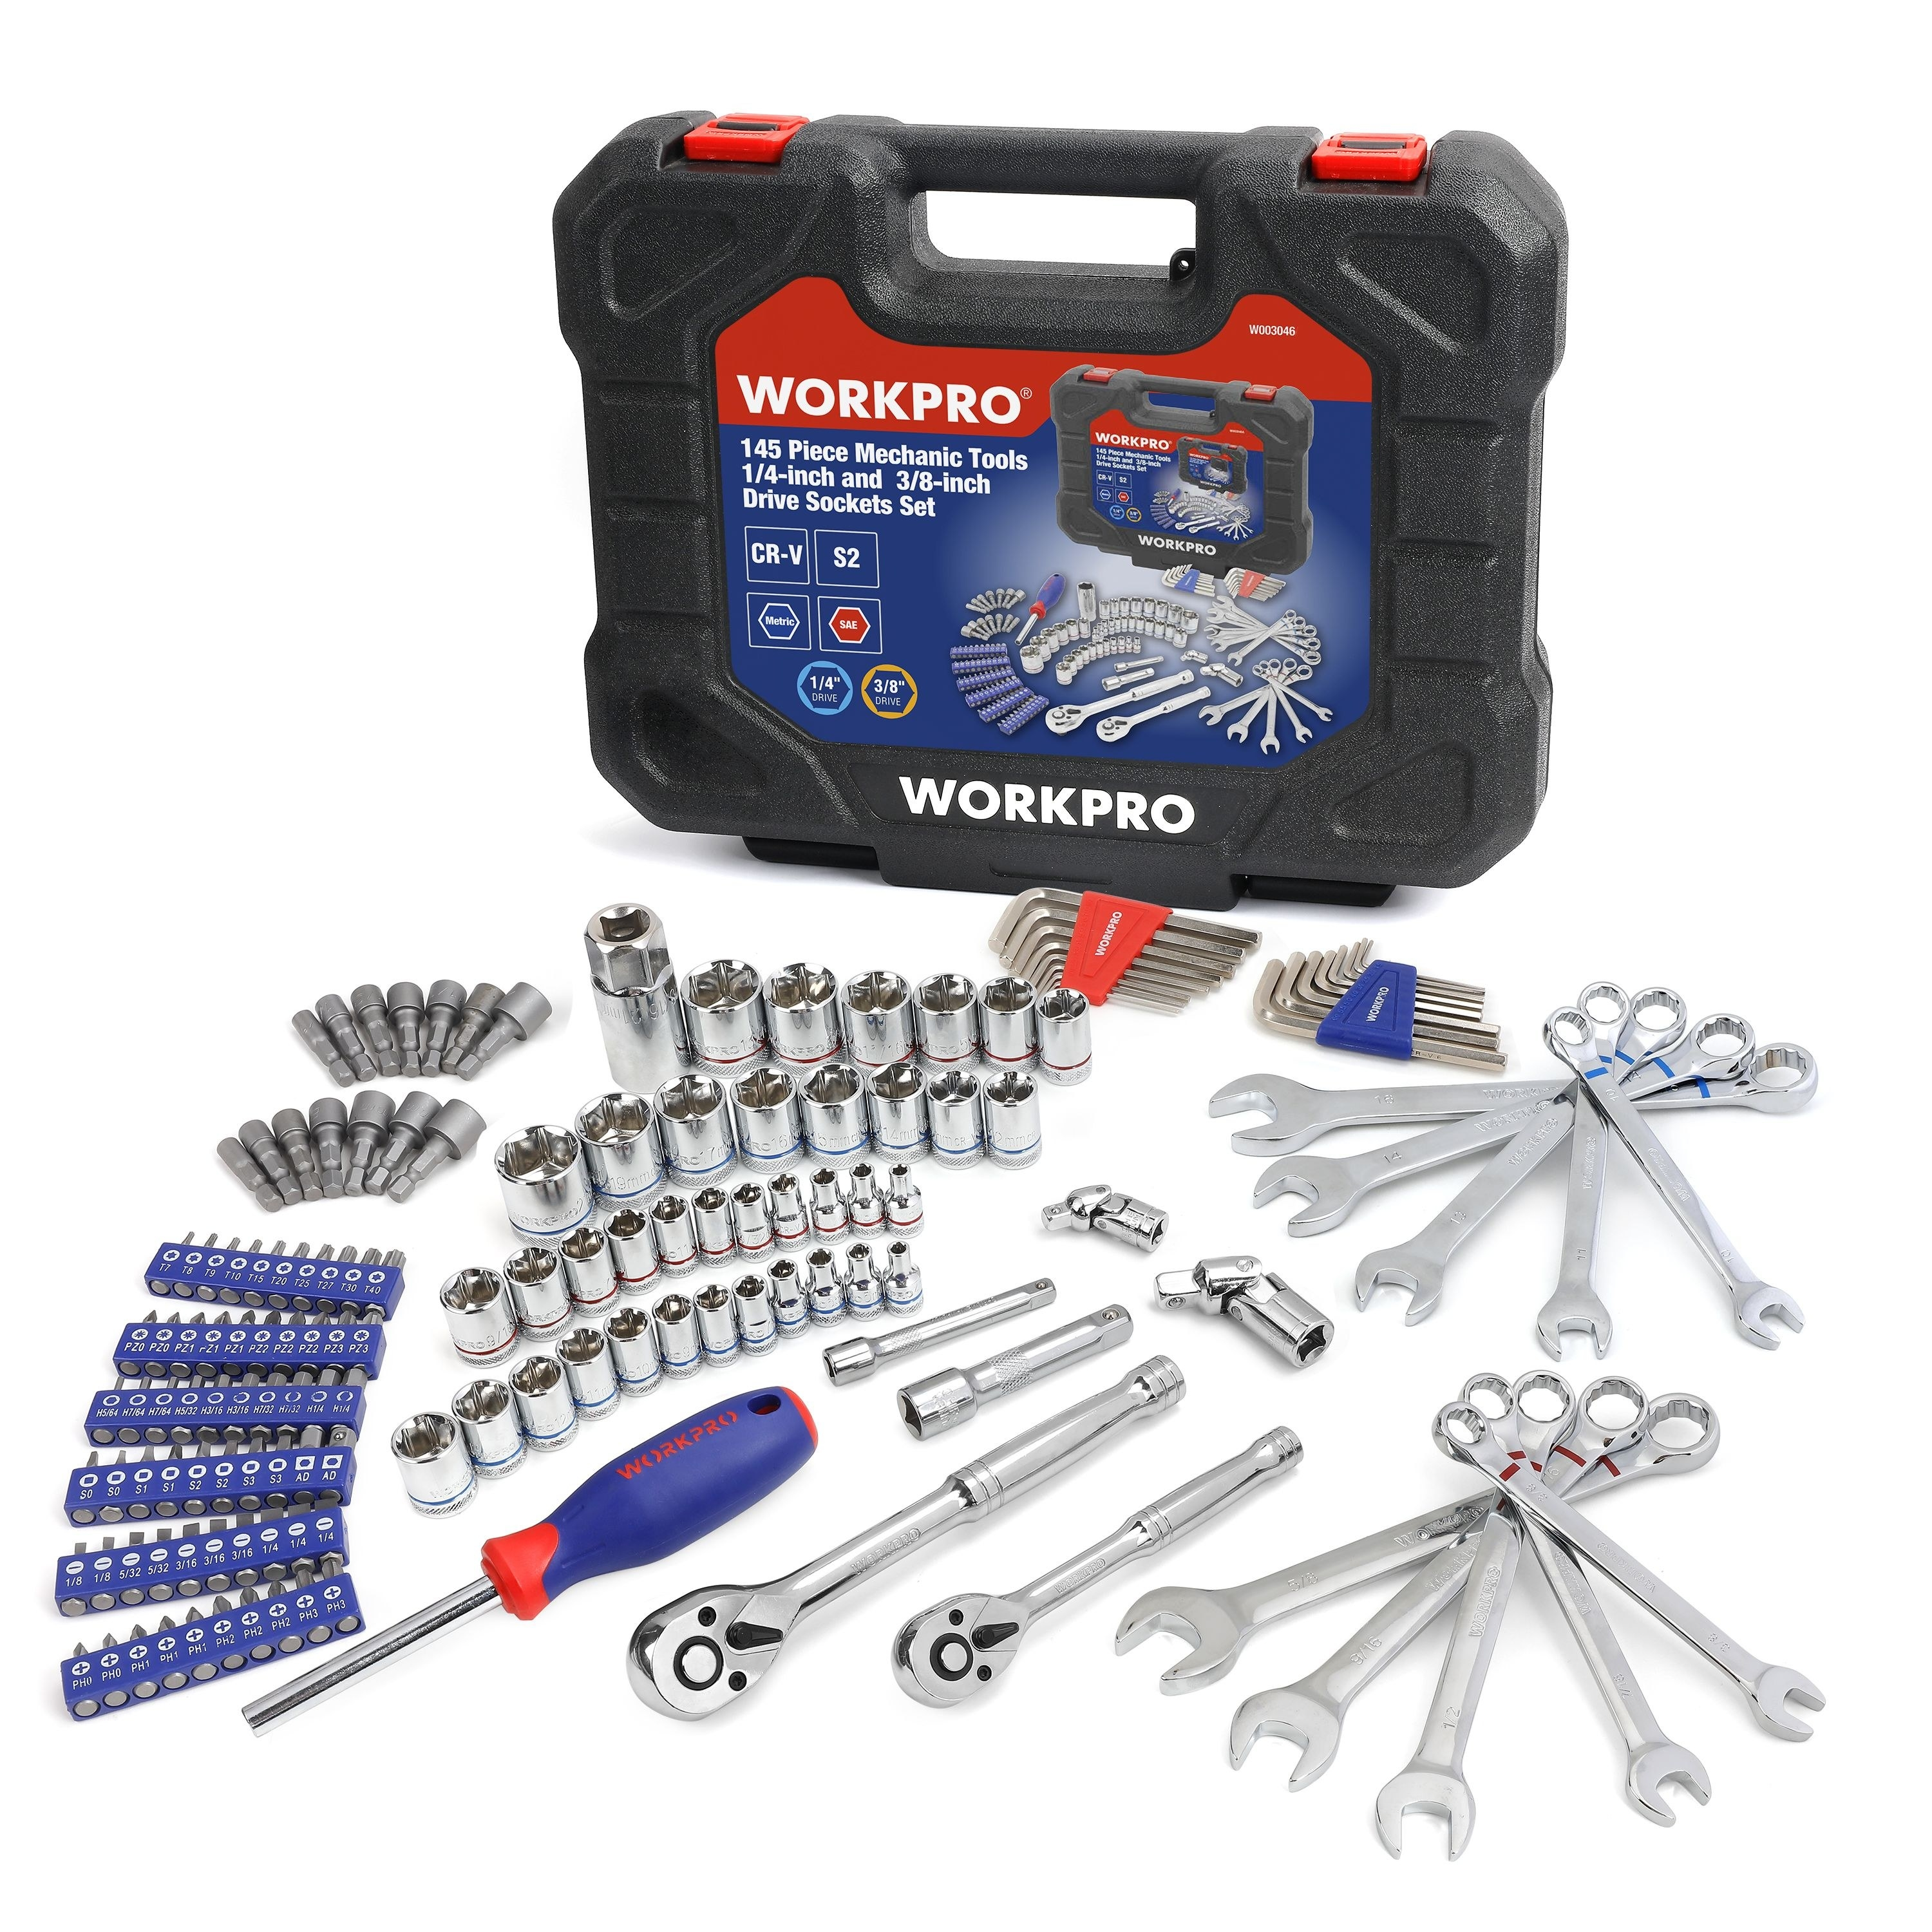 The tool set with 145 pieces laid out, including tools, parts, and sockets